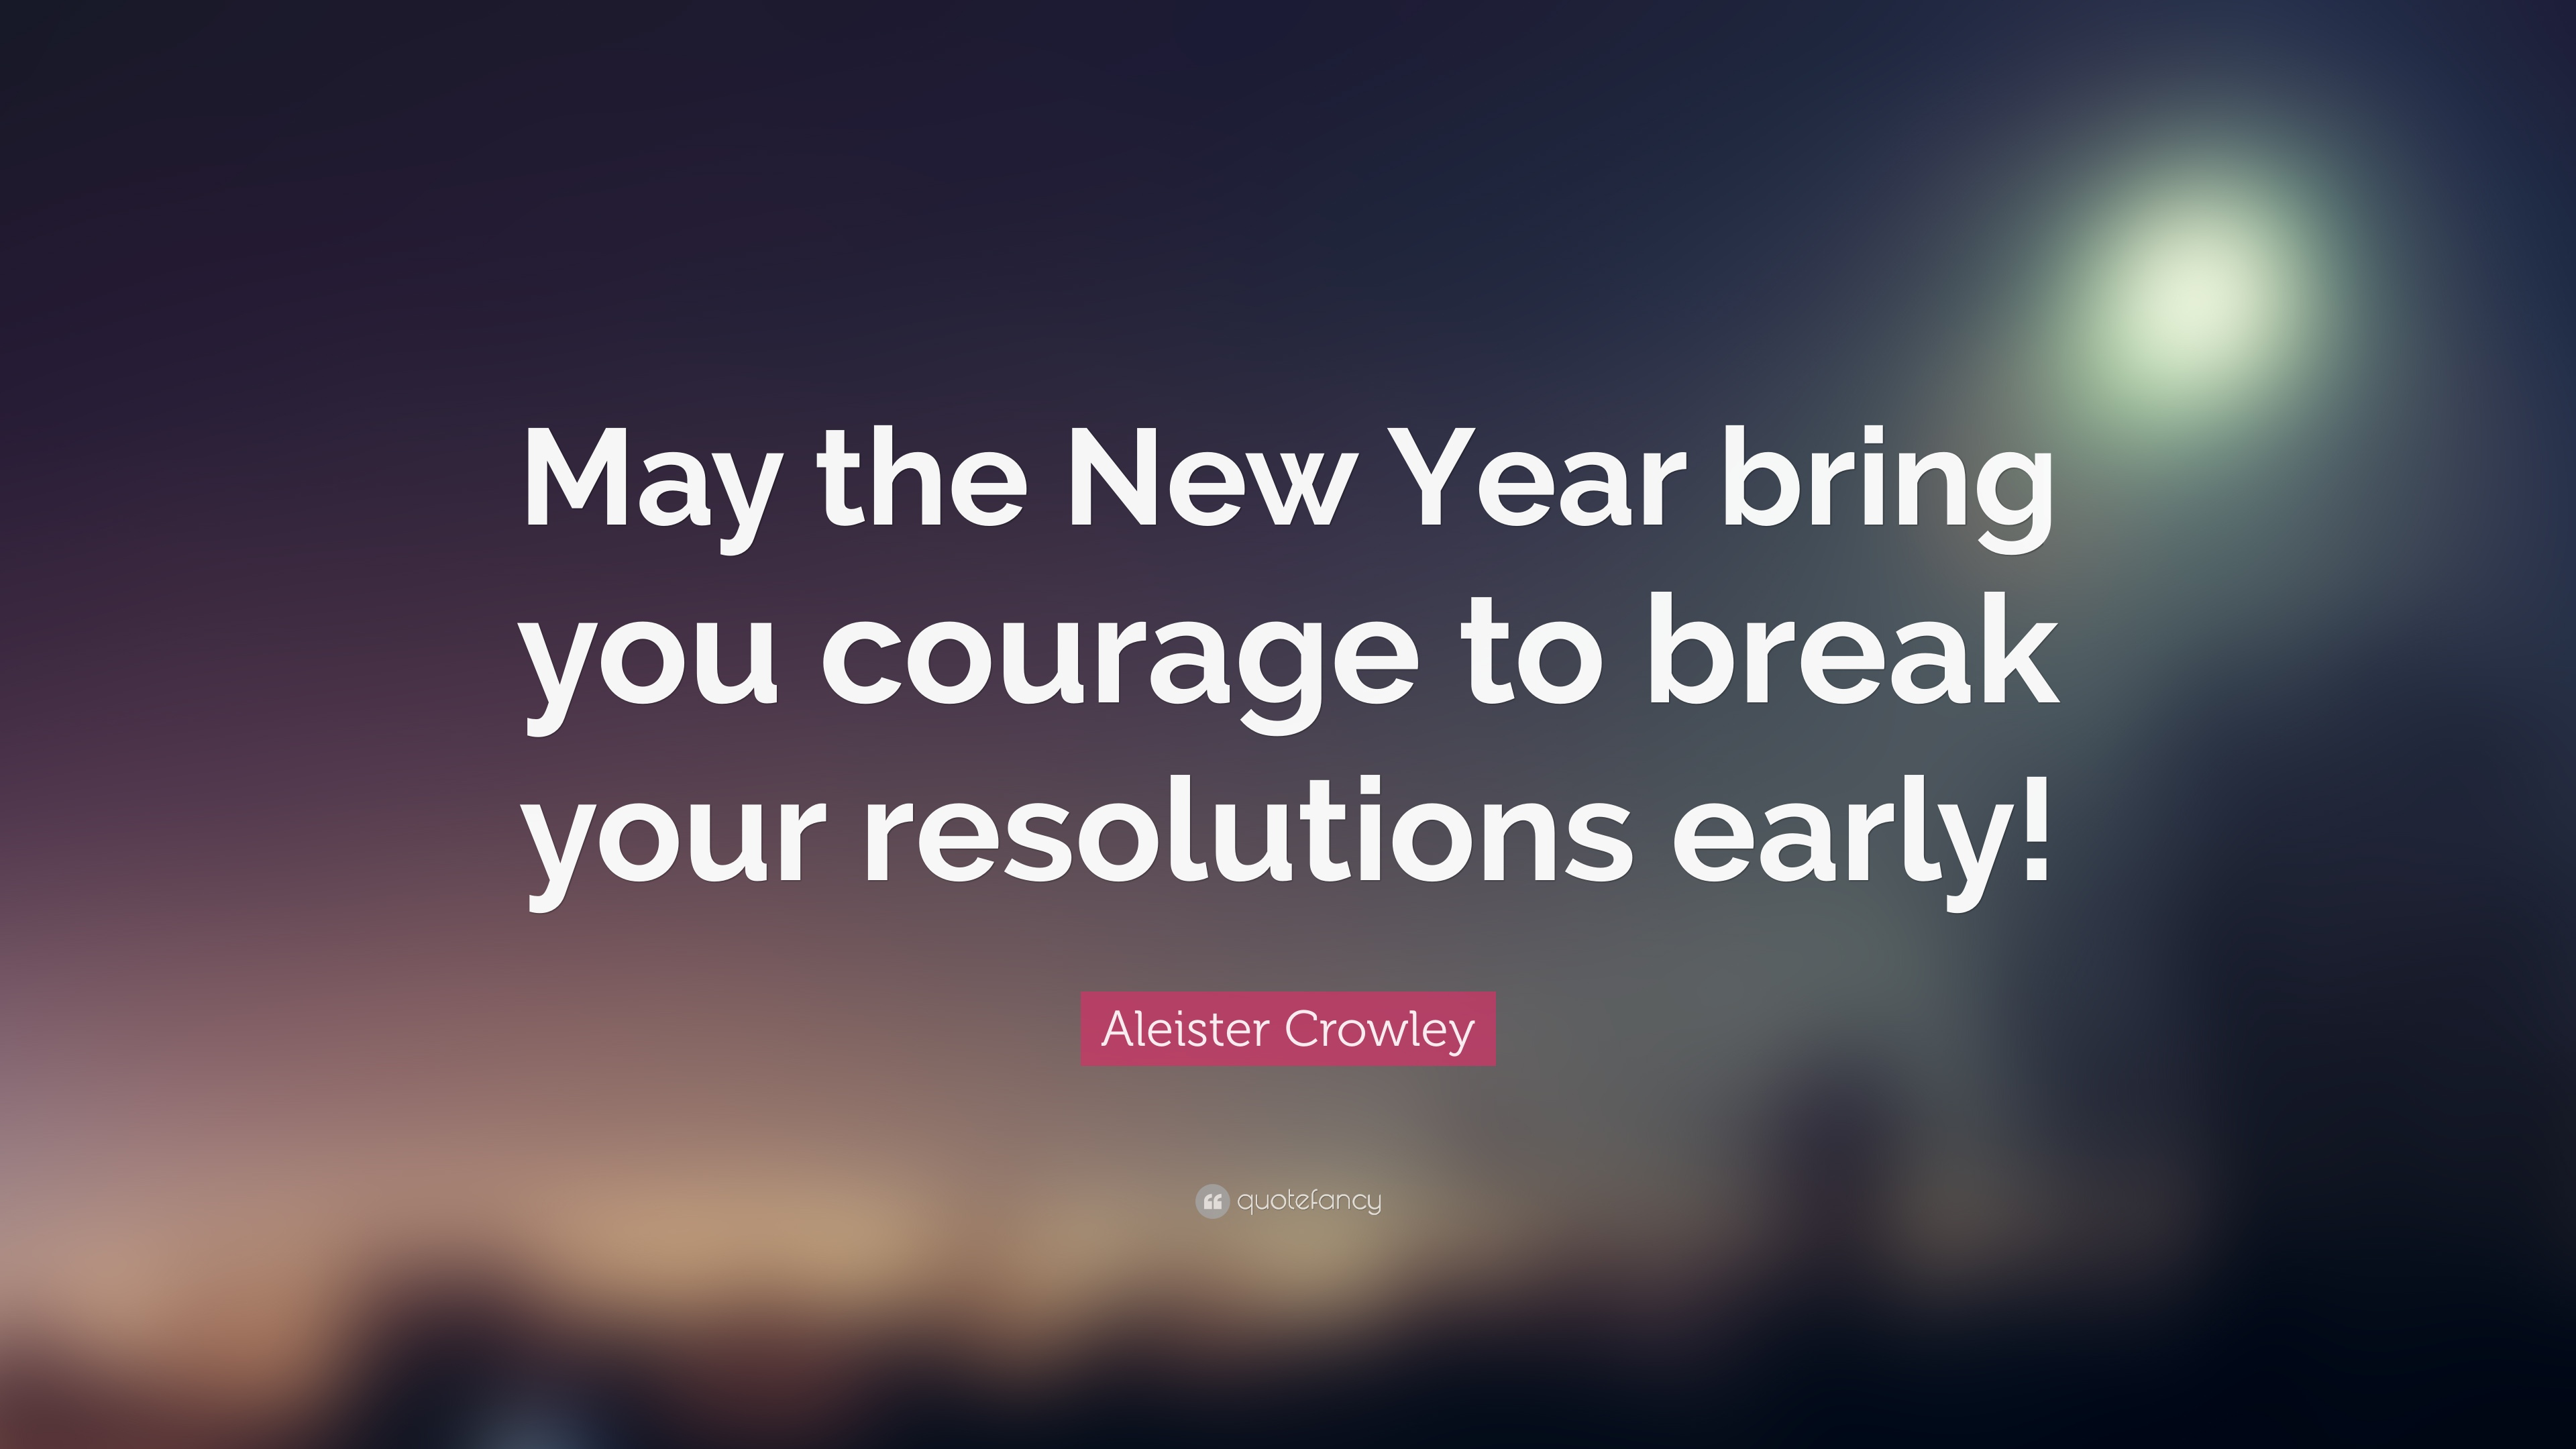 Aleister Crowley Quote: u201cMay the New Year bring you courage to